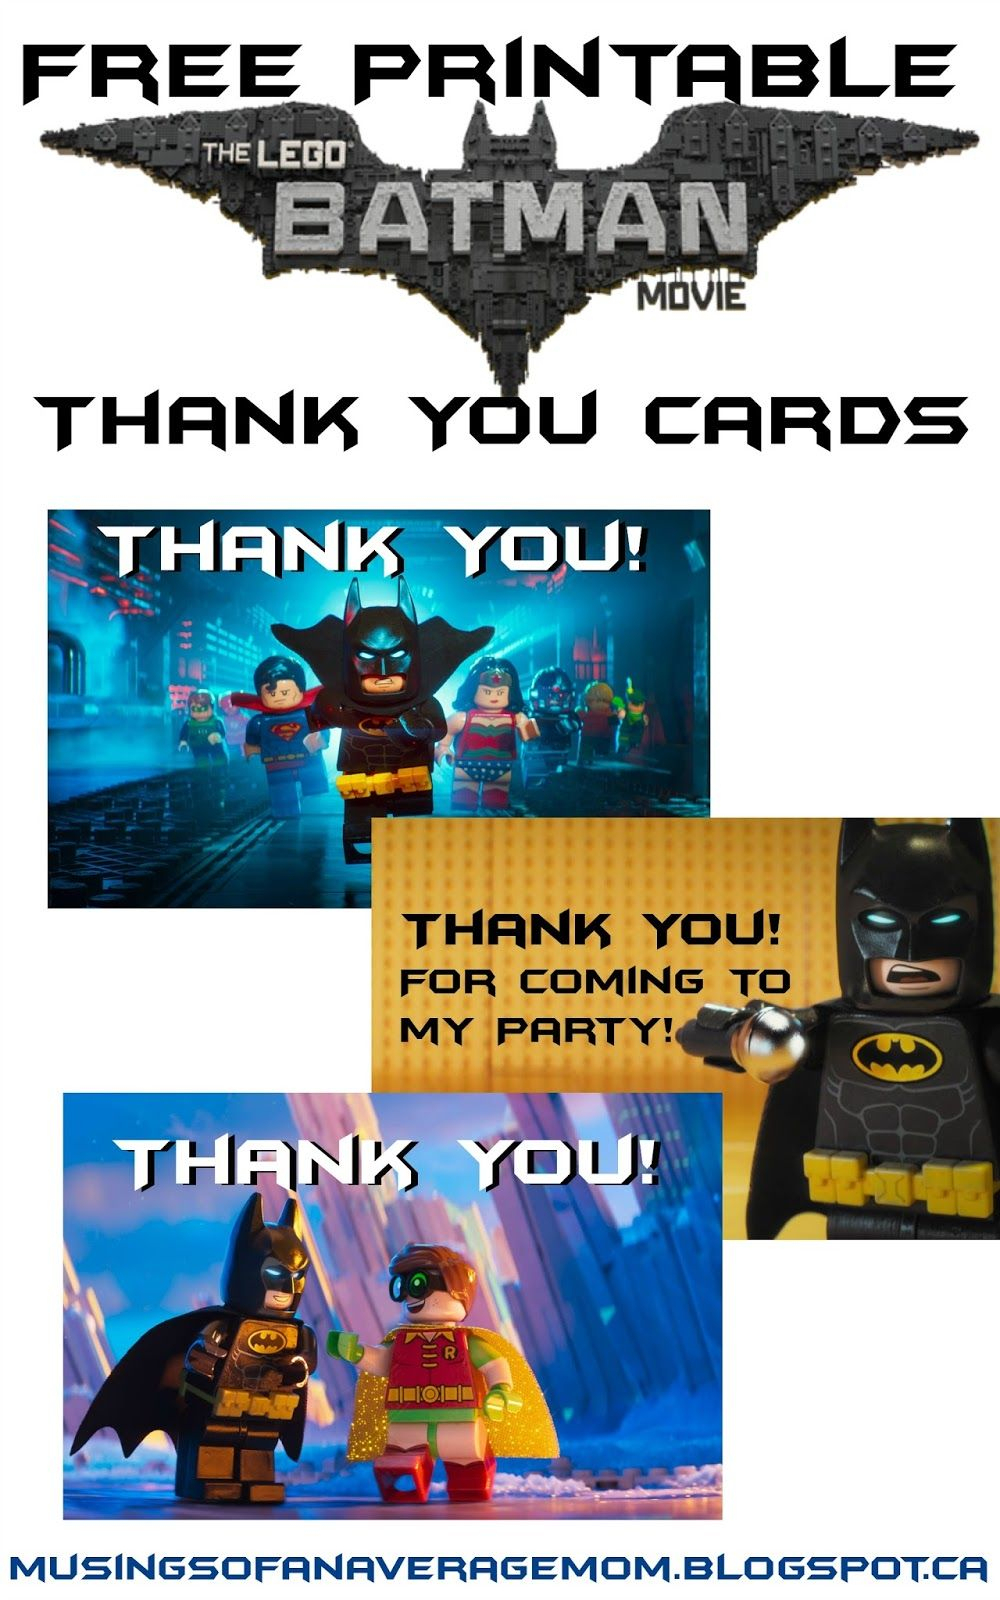 Everything You Need For A Lego Batman Party | Party Ideas - Lego Batman Party Invitations Free Printable